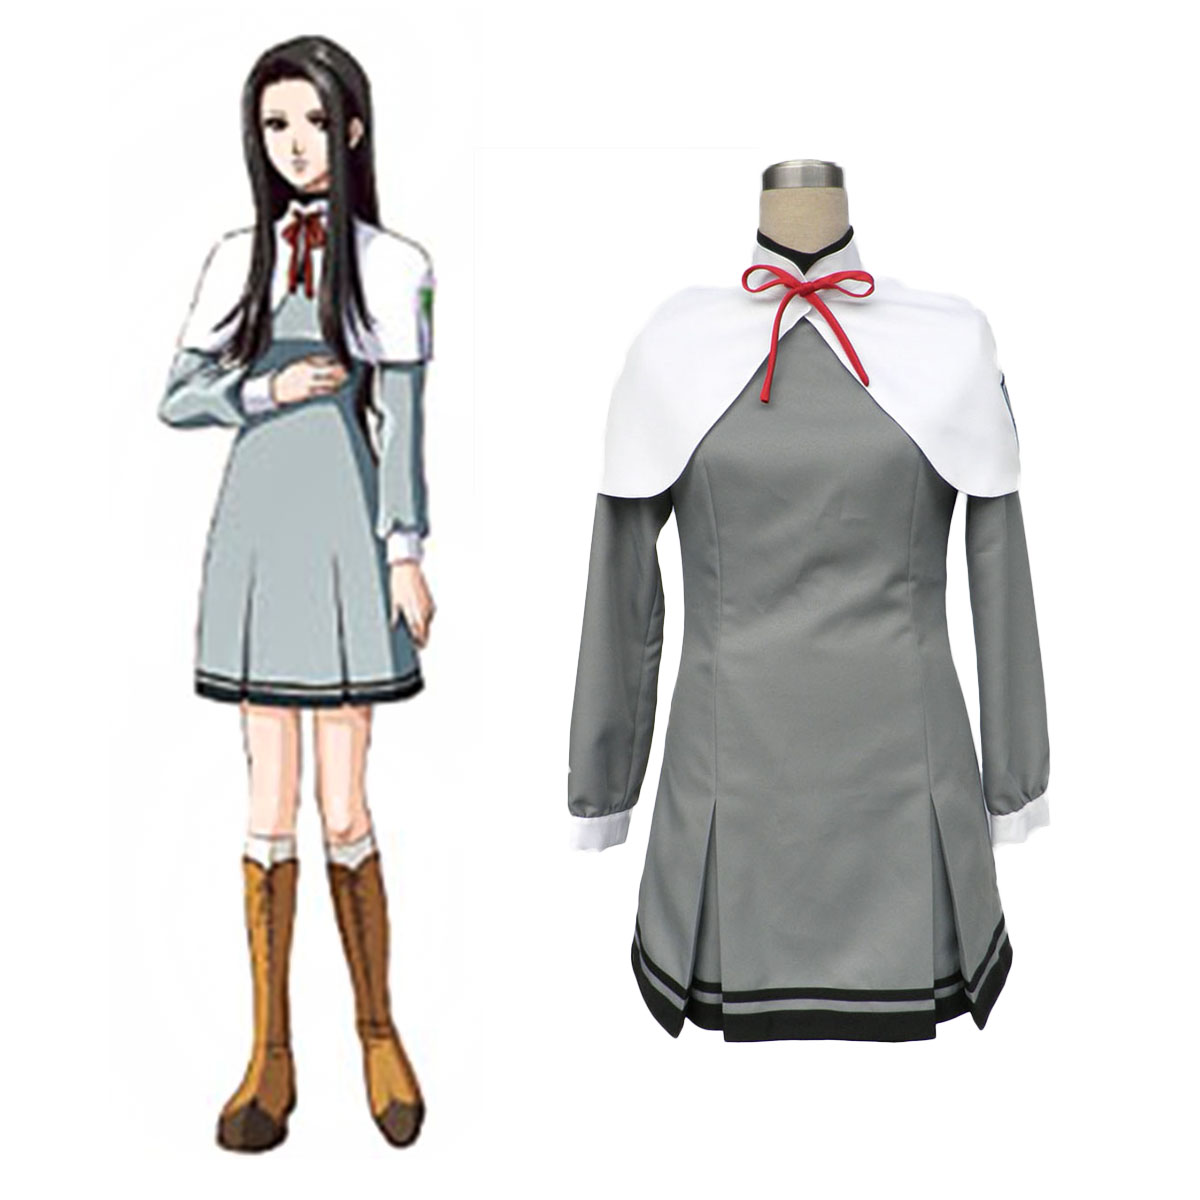 Tokimeki Memorial Girl's Side Female School Uniform Cosplay Costumes AU